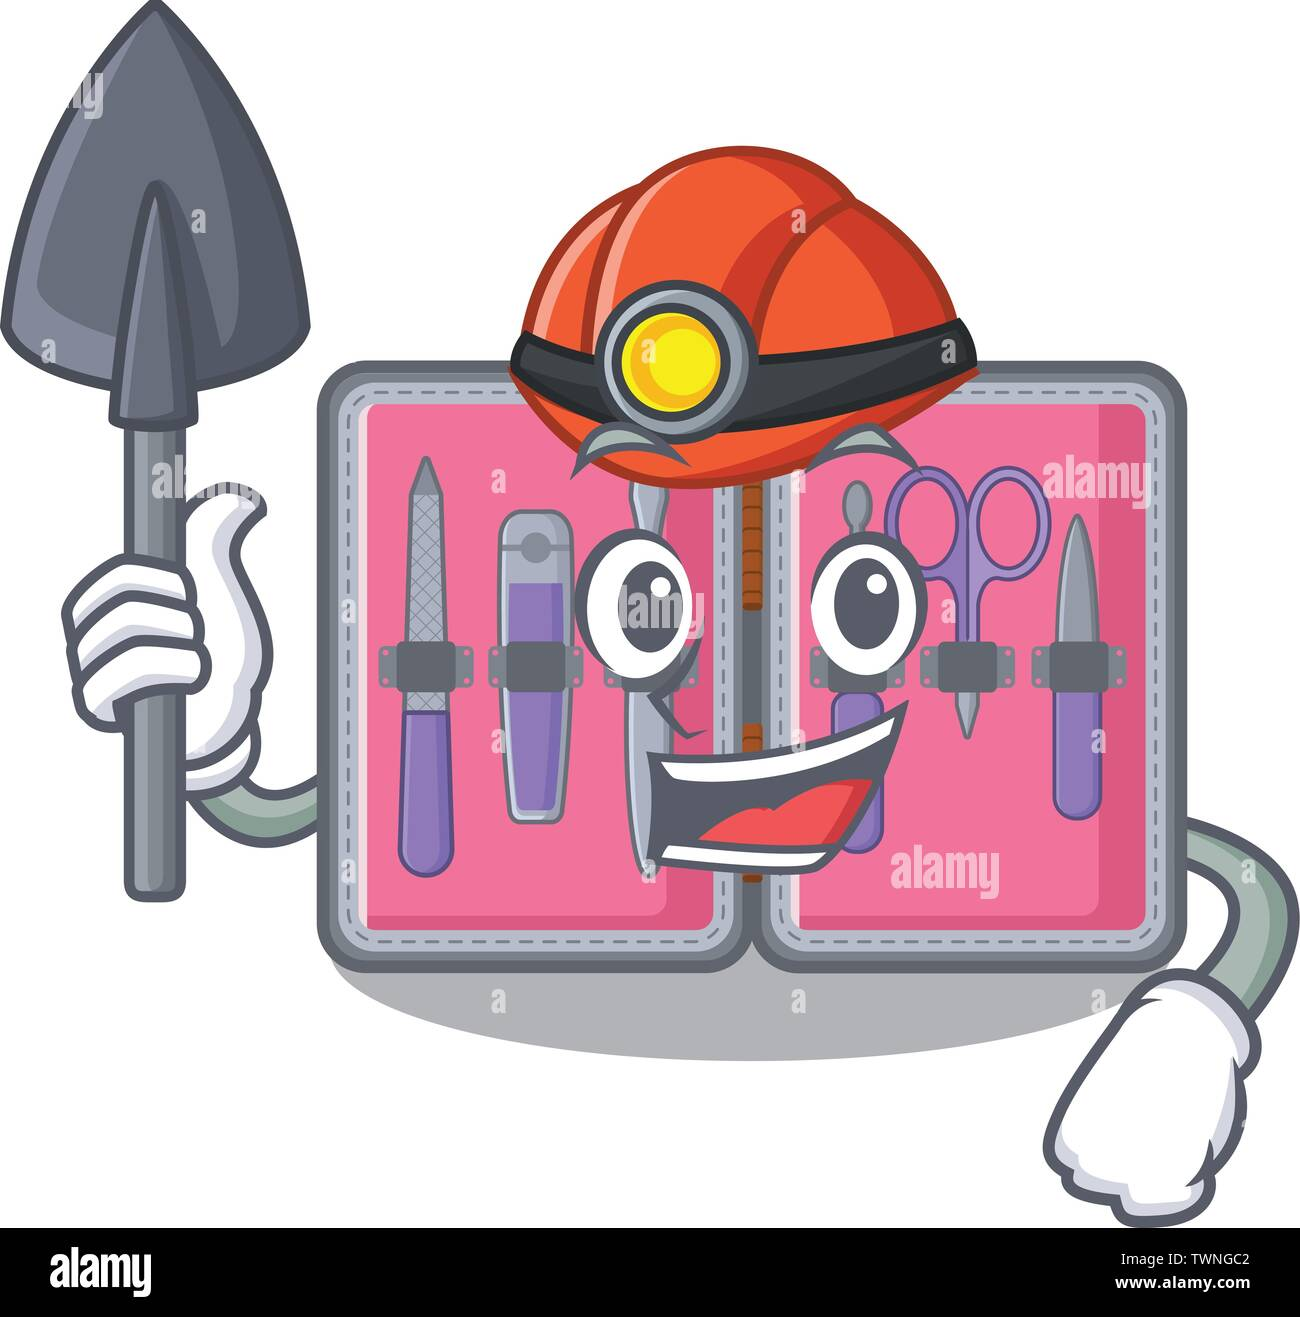 Miner manicure kit in the mascot shape - Stock Image